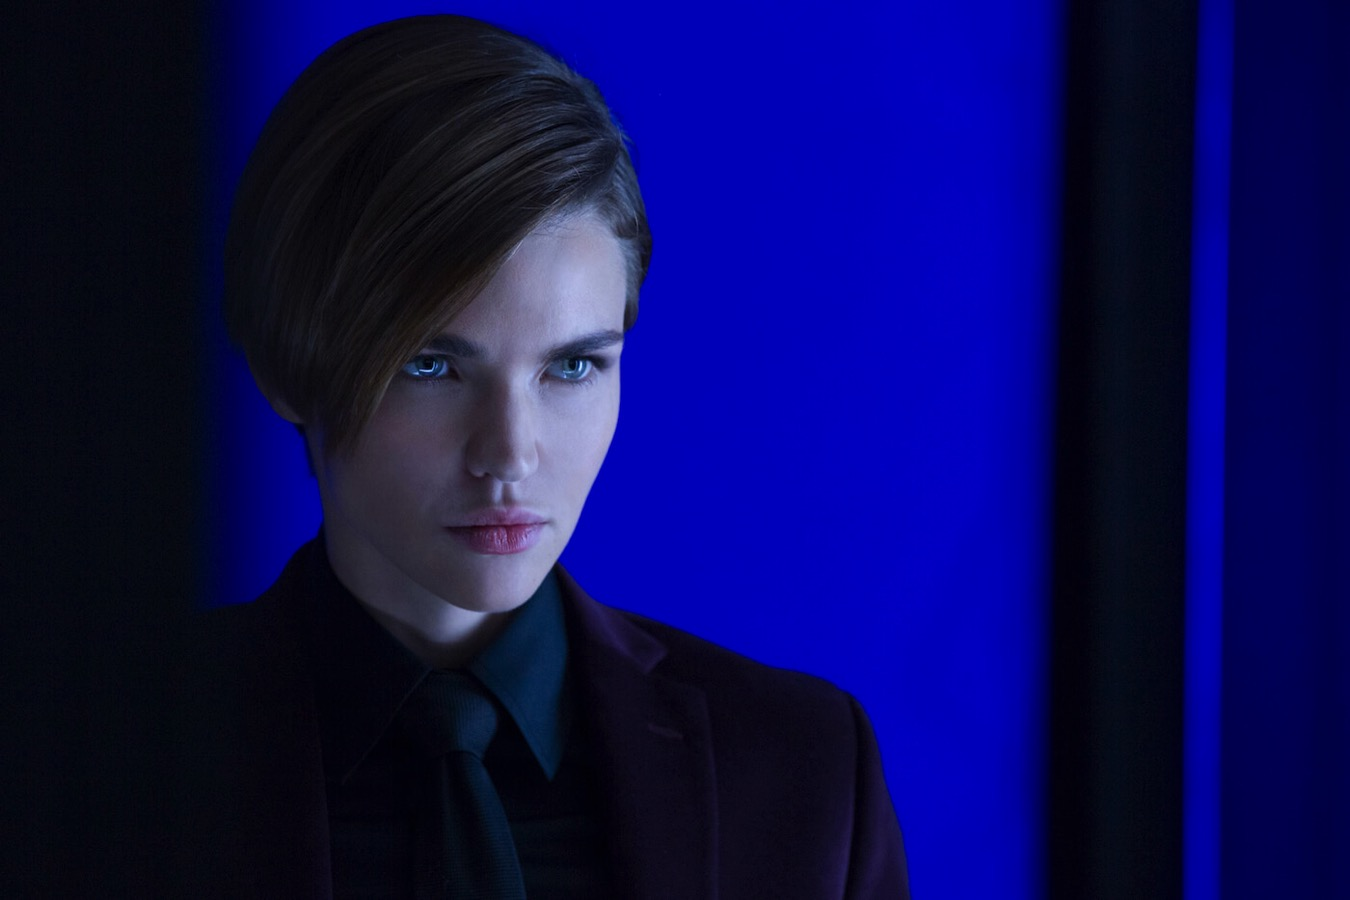 John wick 2 ruby rose ares